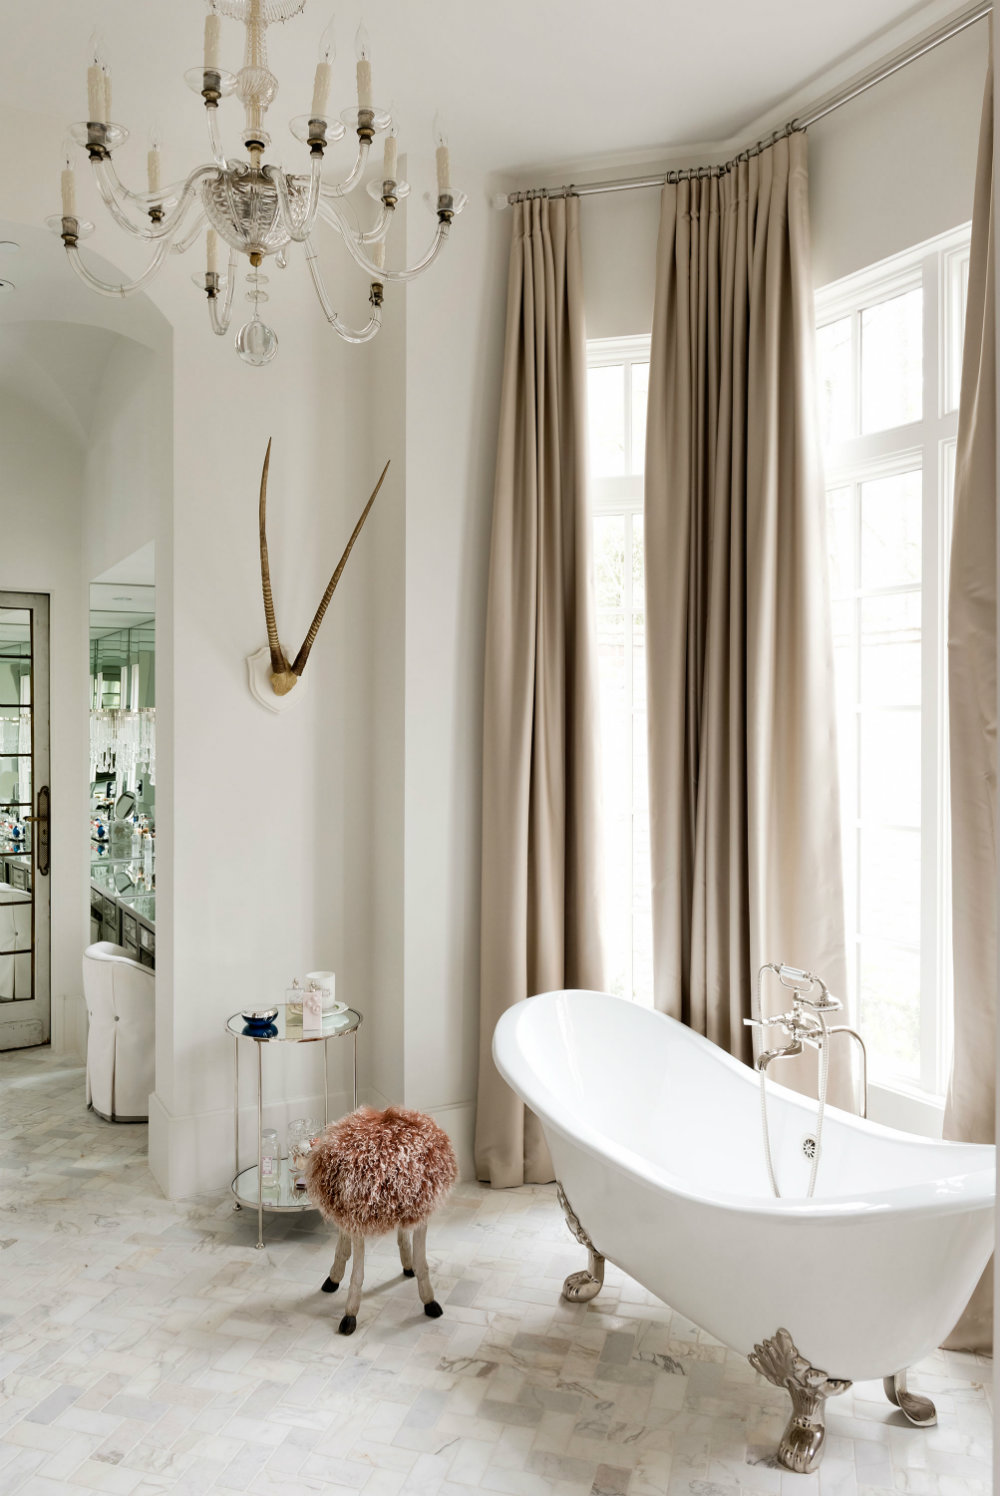 10 Luxury Bathrooms For The Master Bedroom Of Your Dreams 07 luxury bathrooms 10 Luxury Bathrooms For The Master Bedroom Of Your Dreams 10 Luxury Bathrooms For The Master Bedroom Of Your Dreams 07